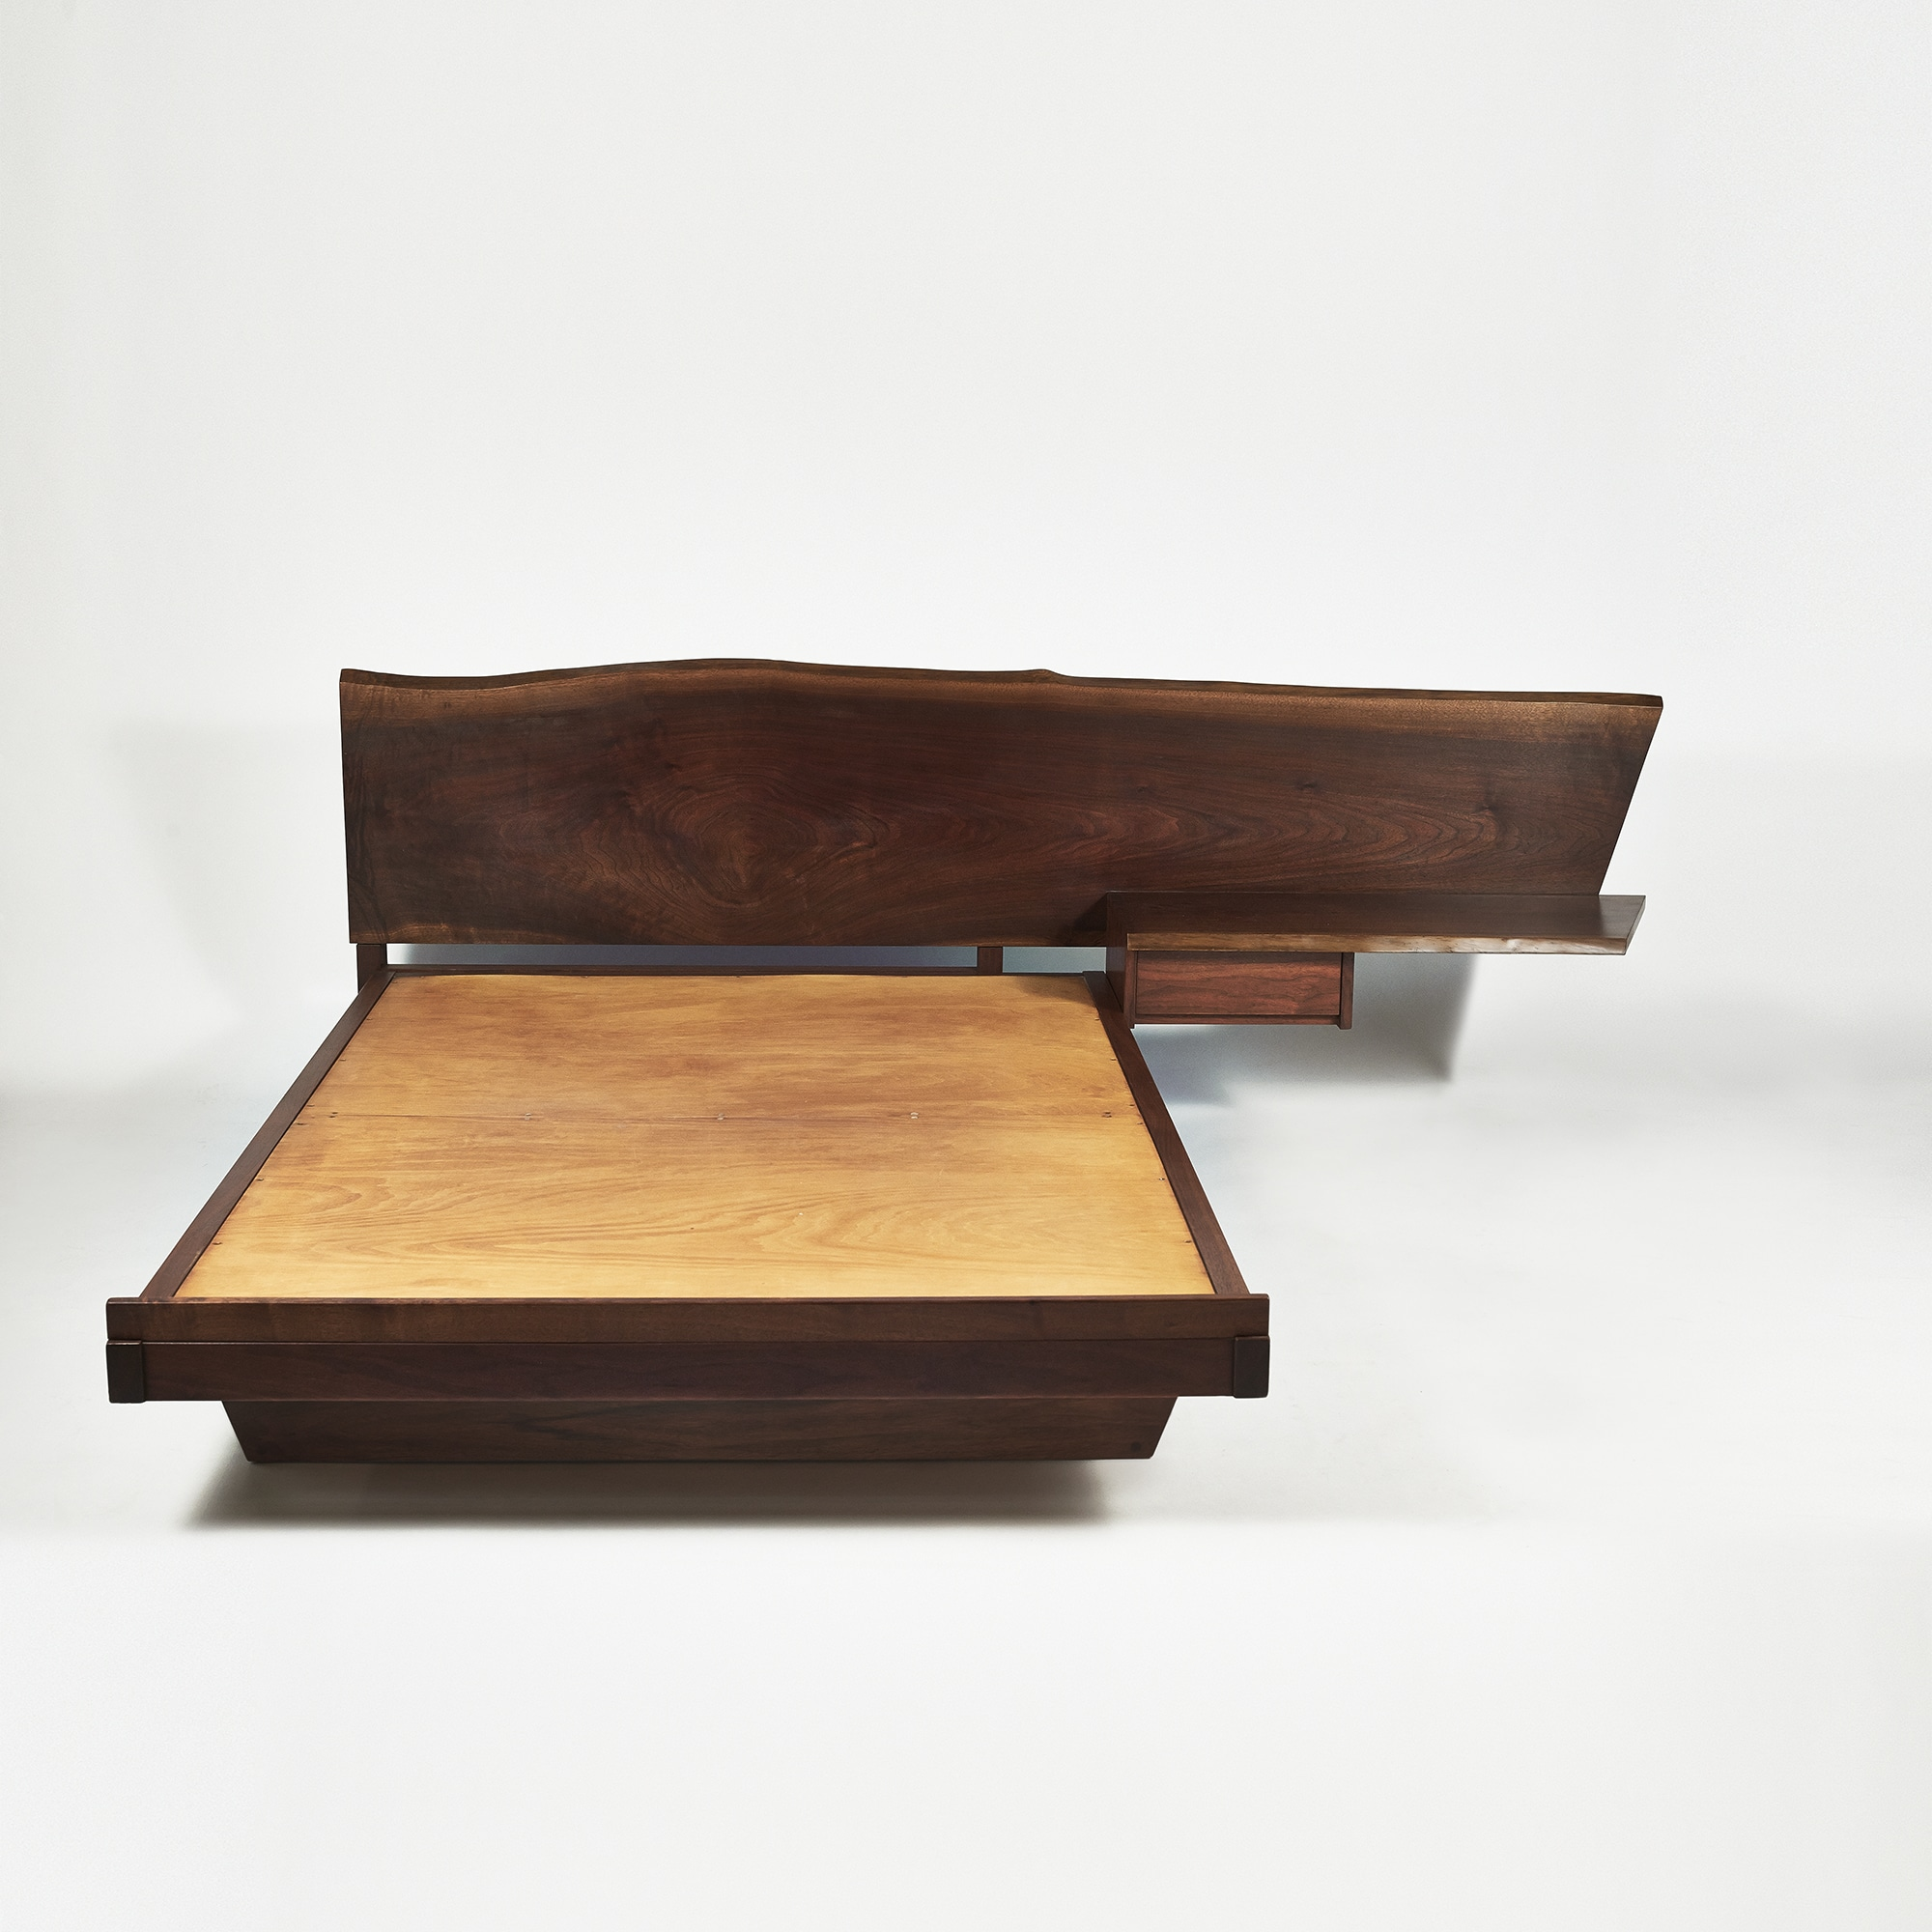 George nakashima platform bed with cantilevered slab headboard and side table usa 1957 todd - Plywood for platform bed ...